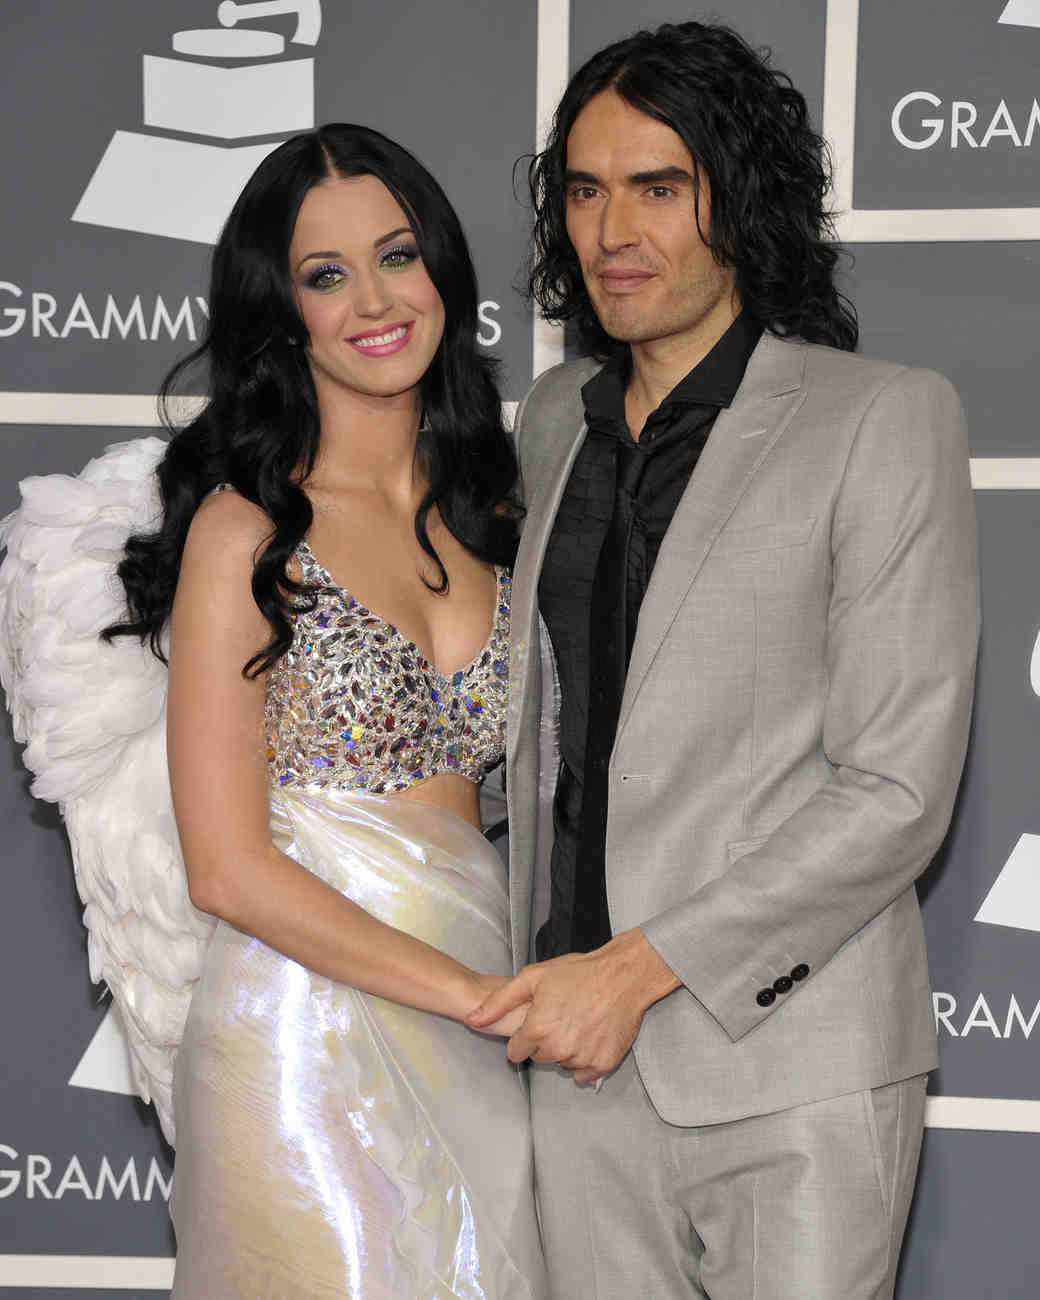 quick-celeb-engagements-katy-perry-russell-brand-0716.jpg